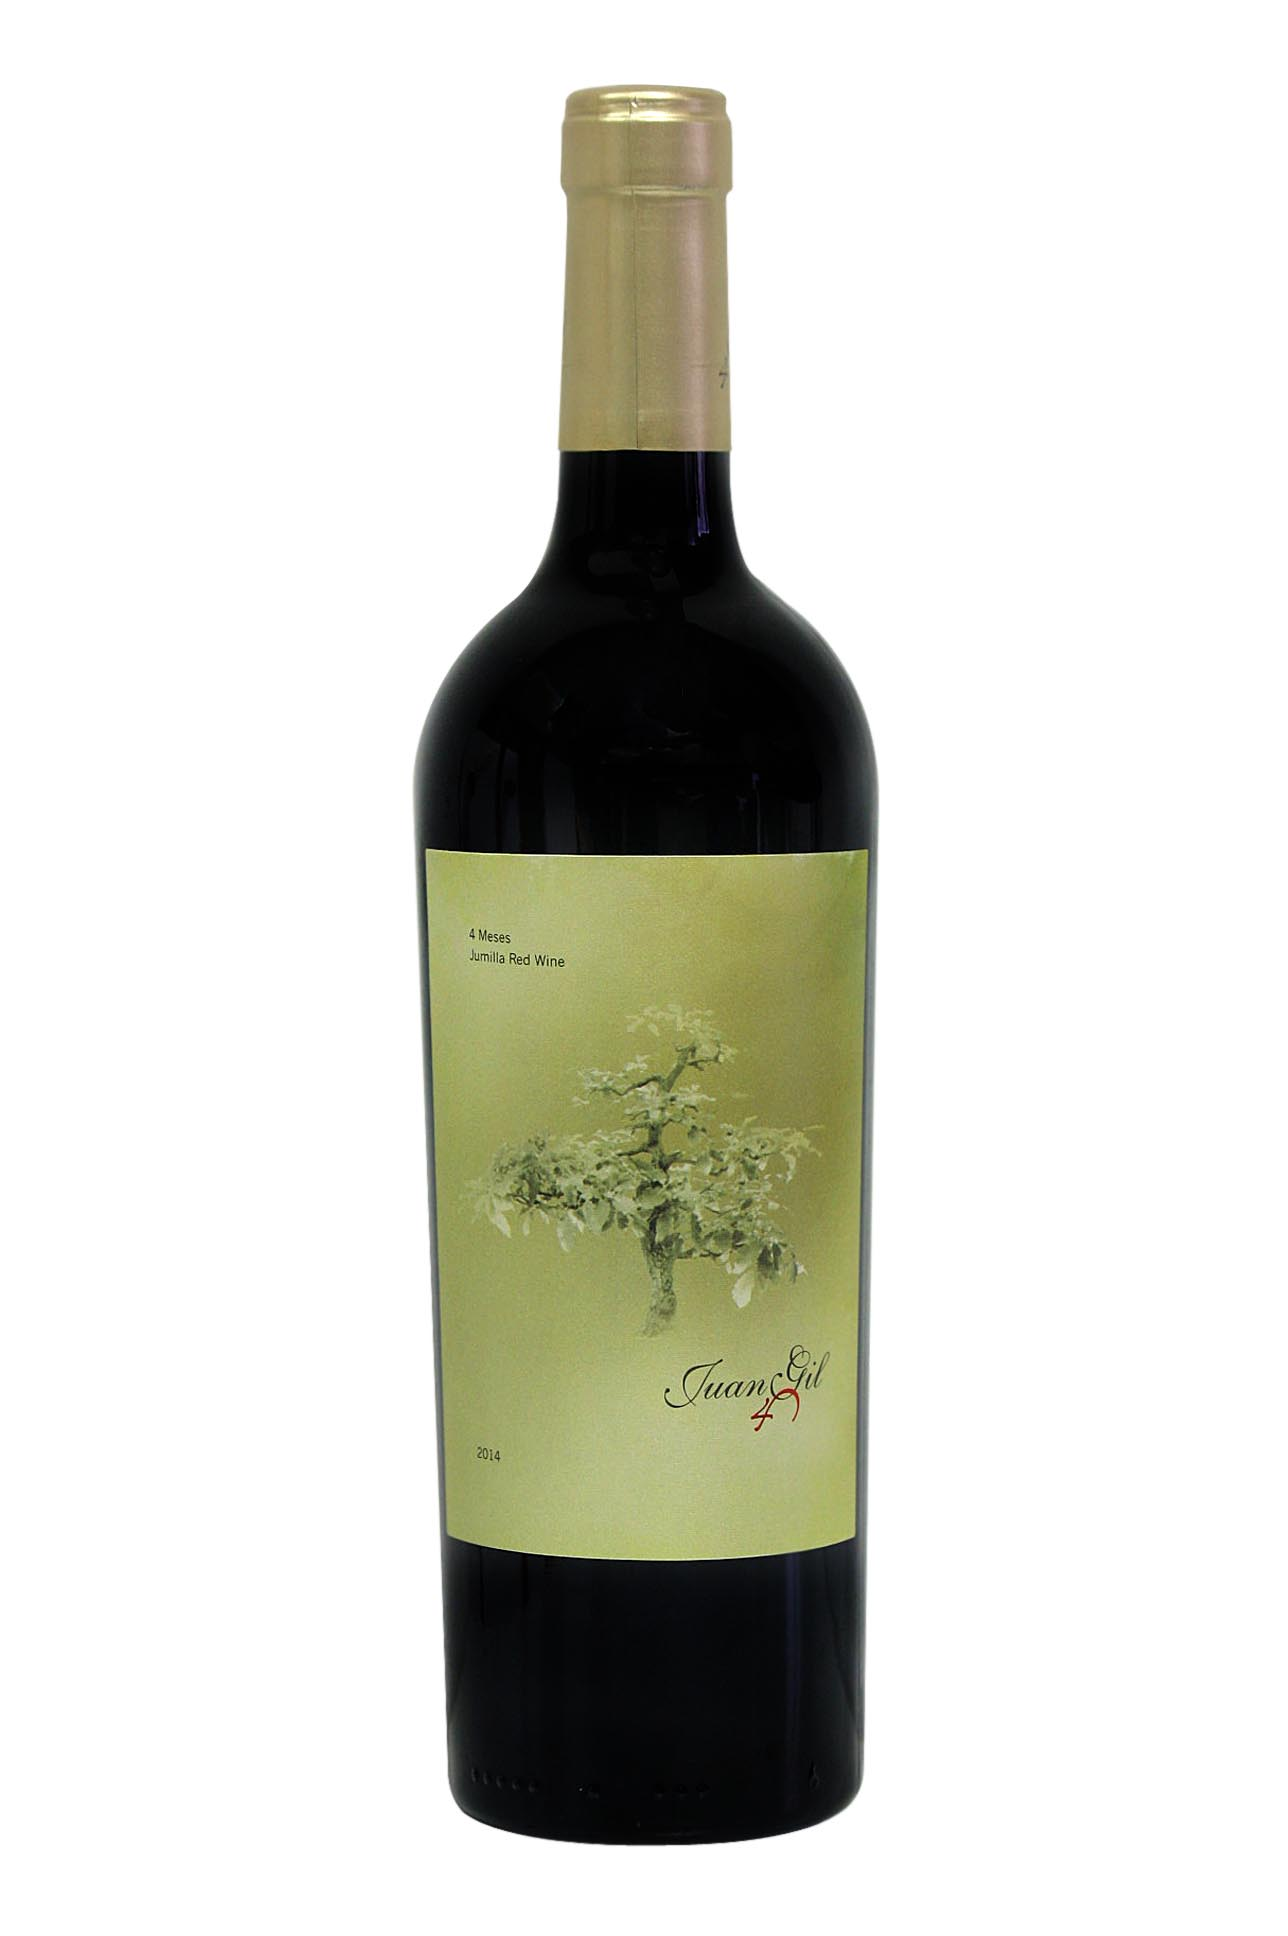 Juan Gil roble red wine